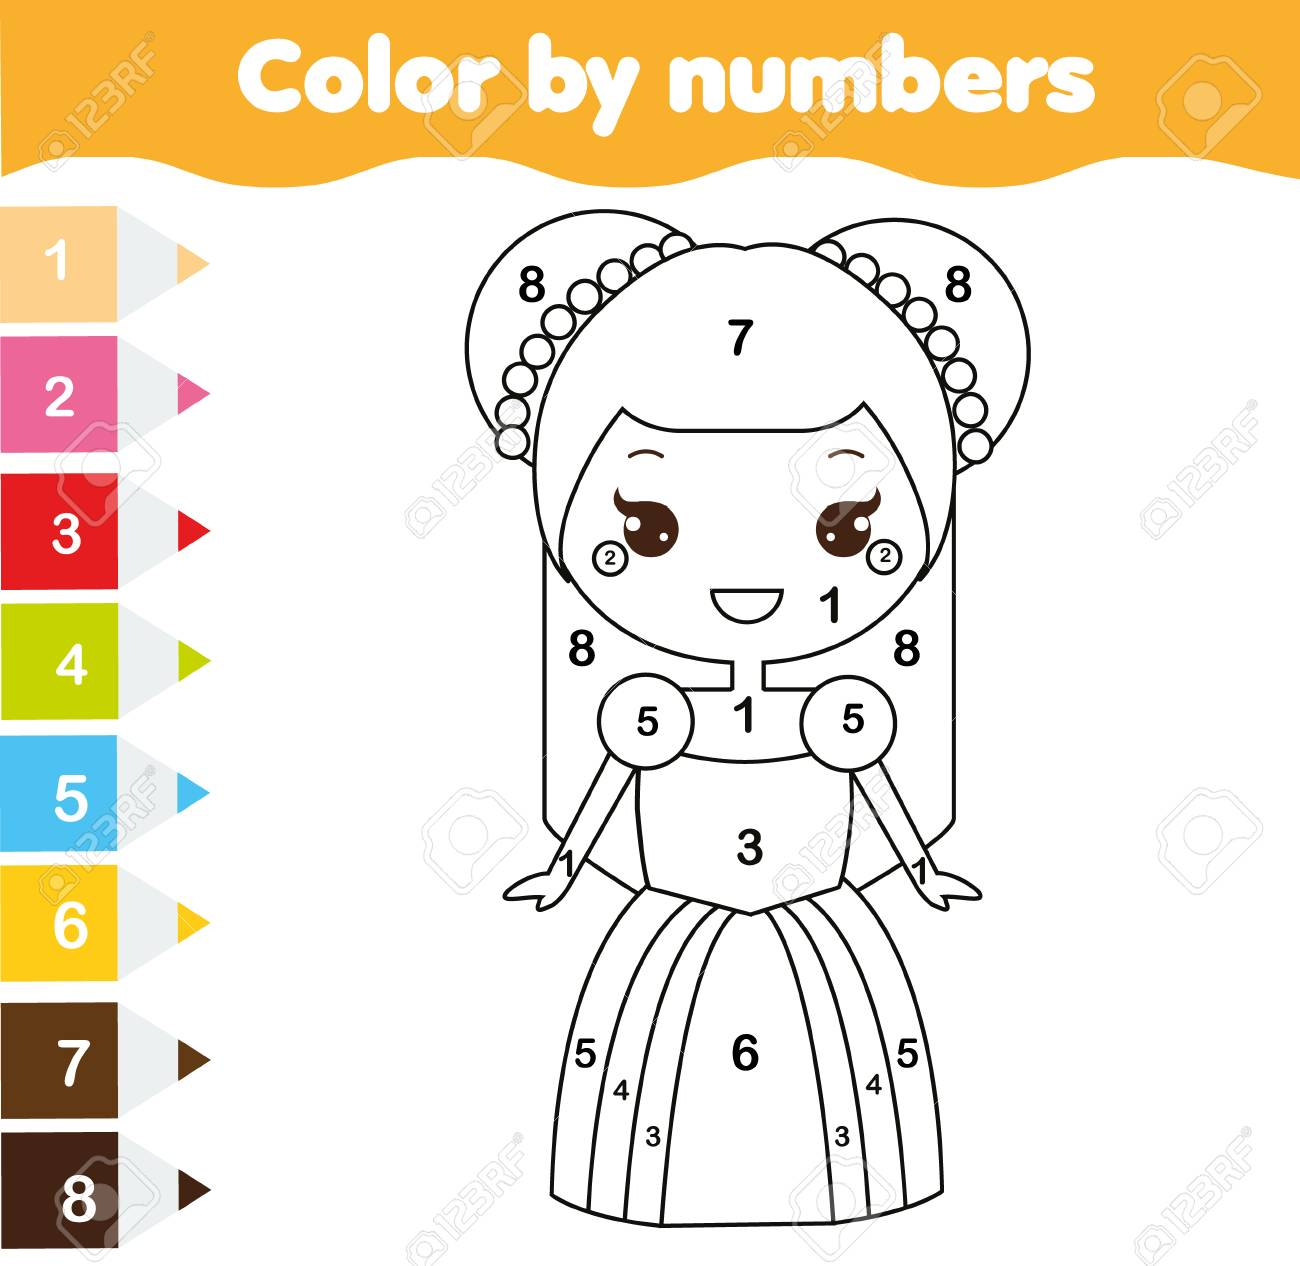 【Top 100】 Happy Color Jeux De Coloriage Par Numéros